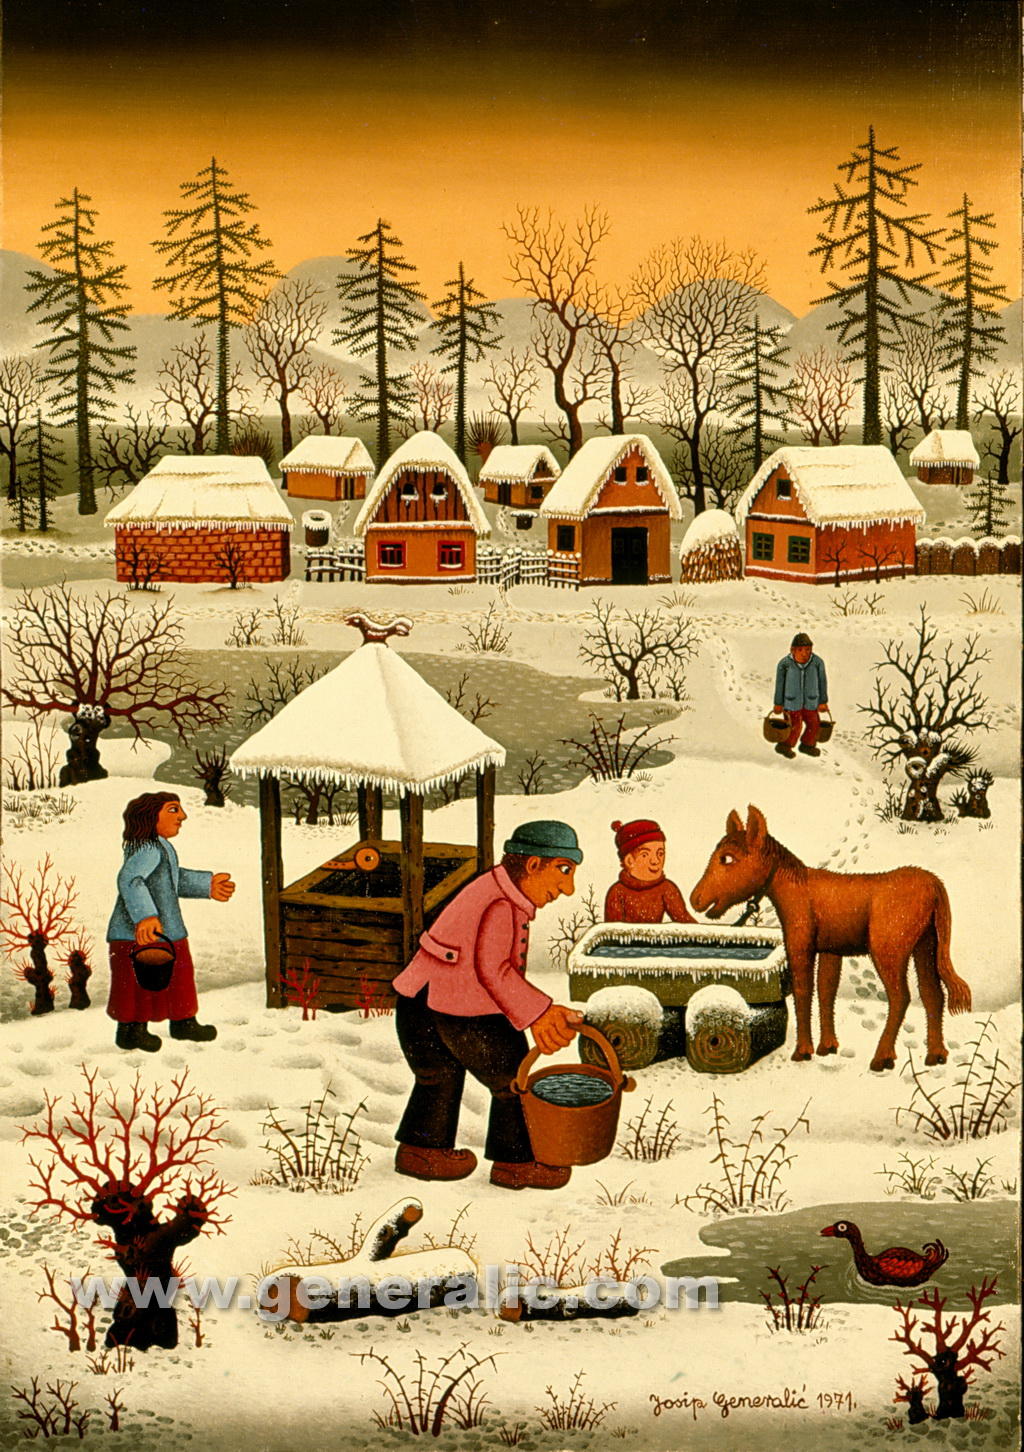 Josip Generalic, 1971, Giving water to a horse, oil on canvas